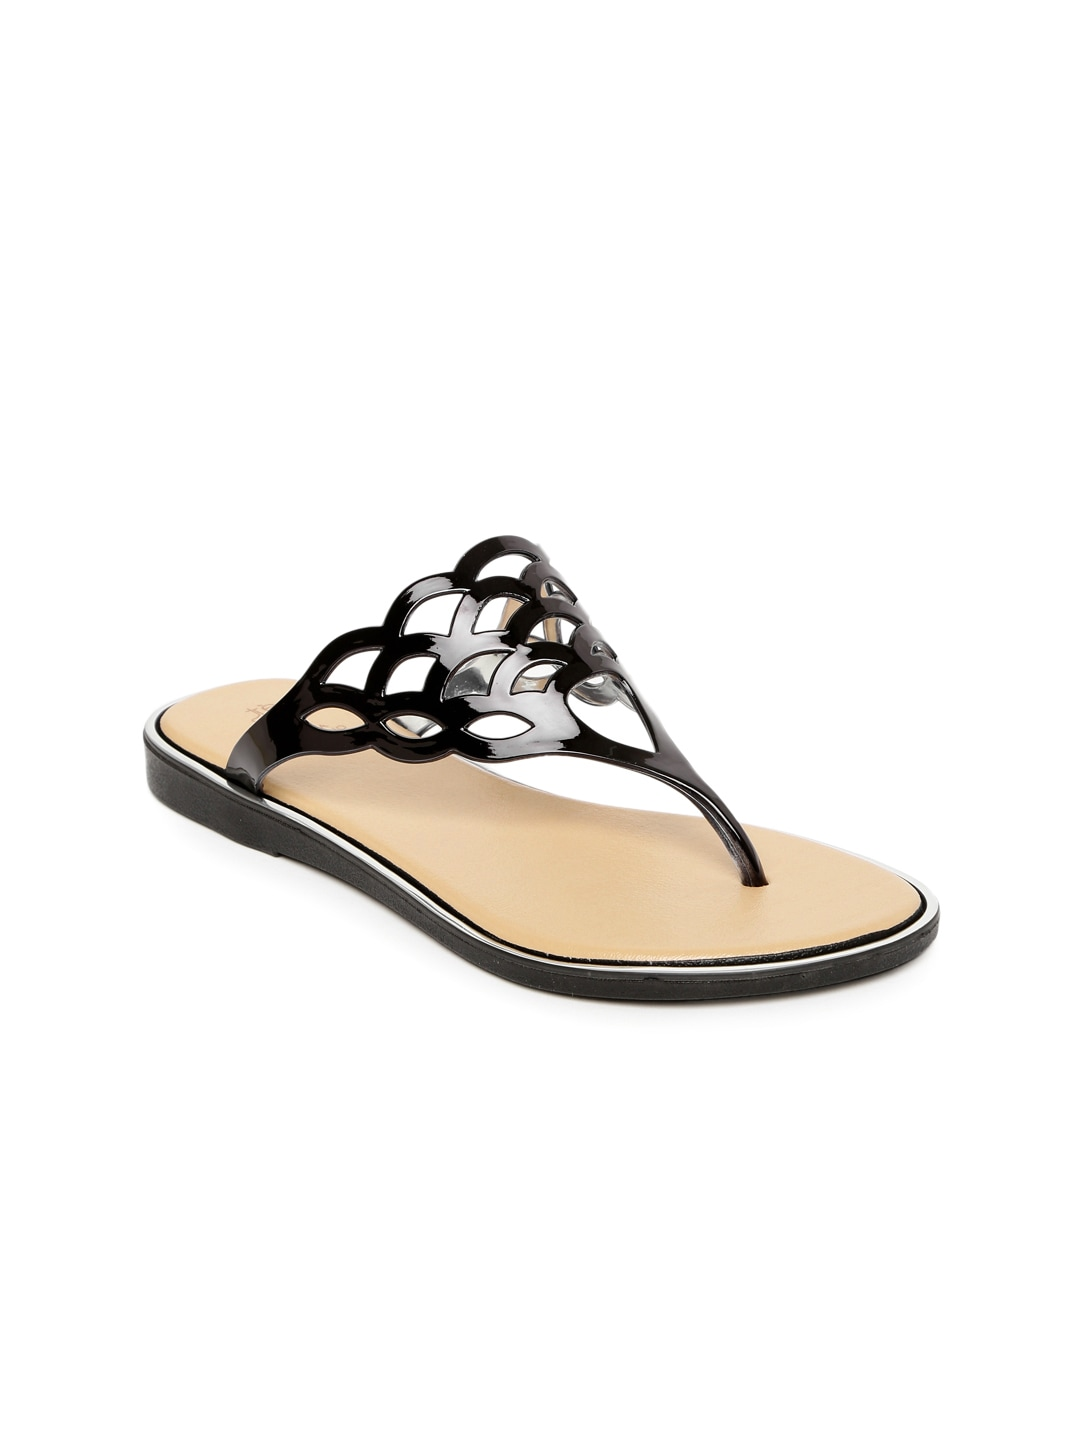 Tresmode Women Black Flats with Cut-Outs image